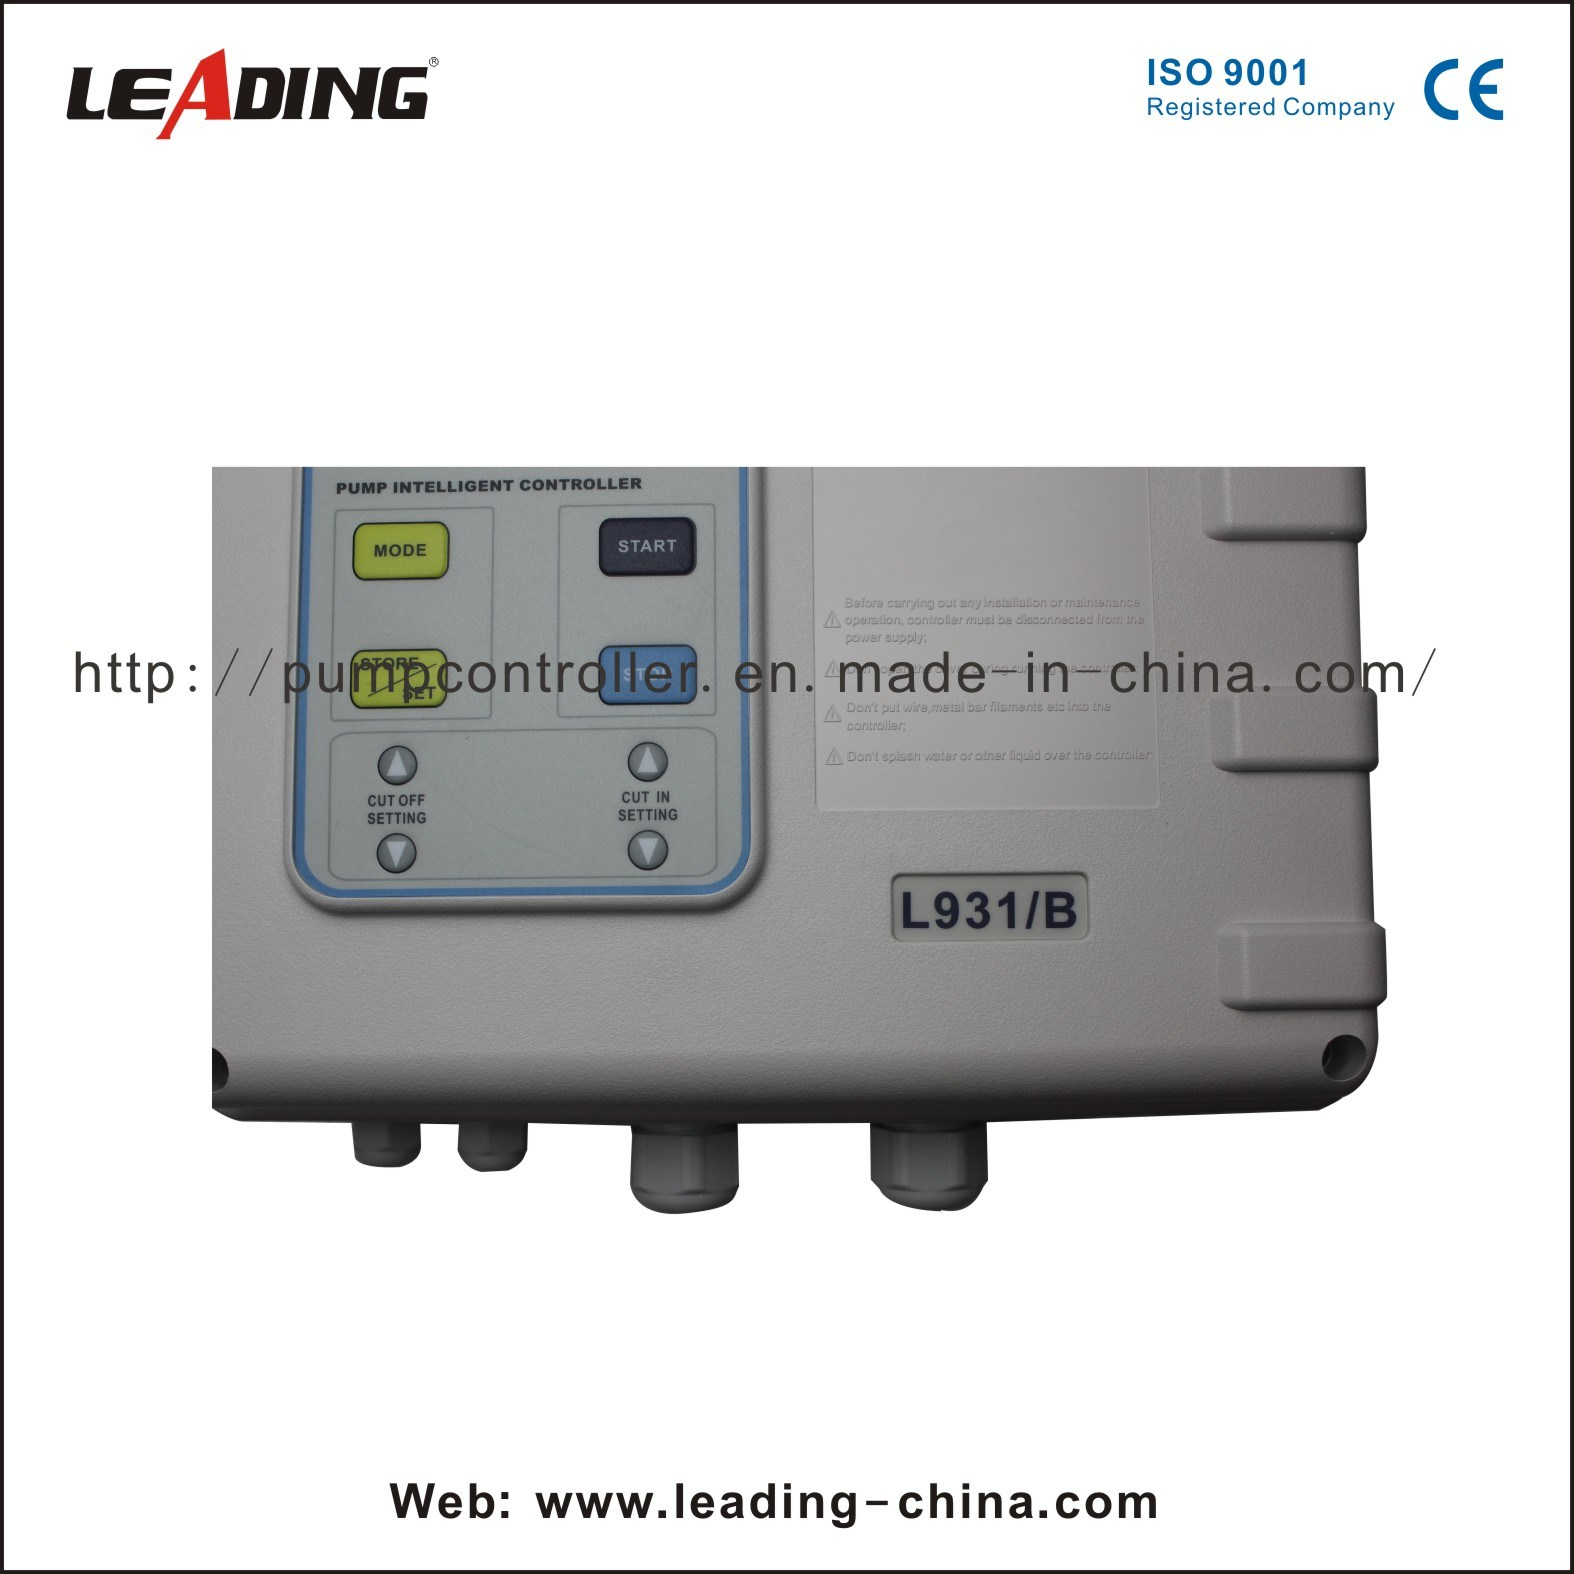 Pressure Boosting Type Pump Control Panel (L931-B)